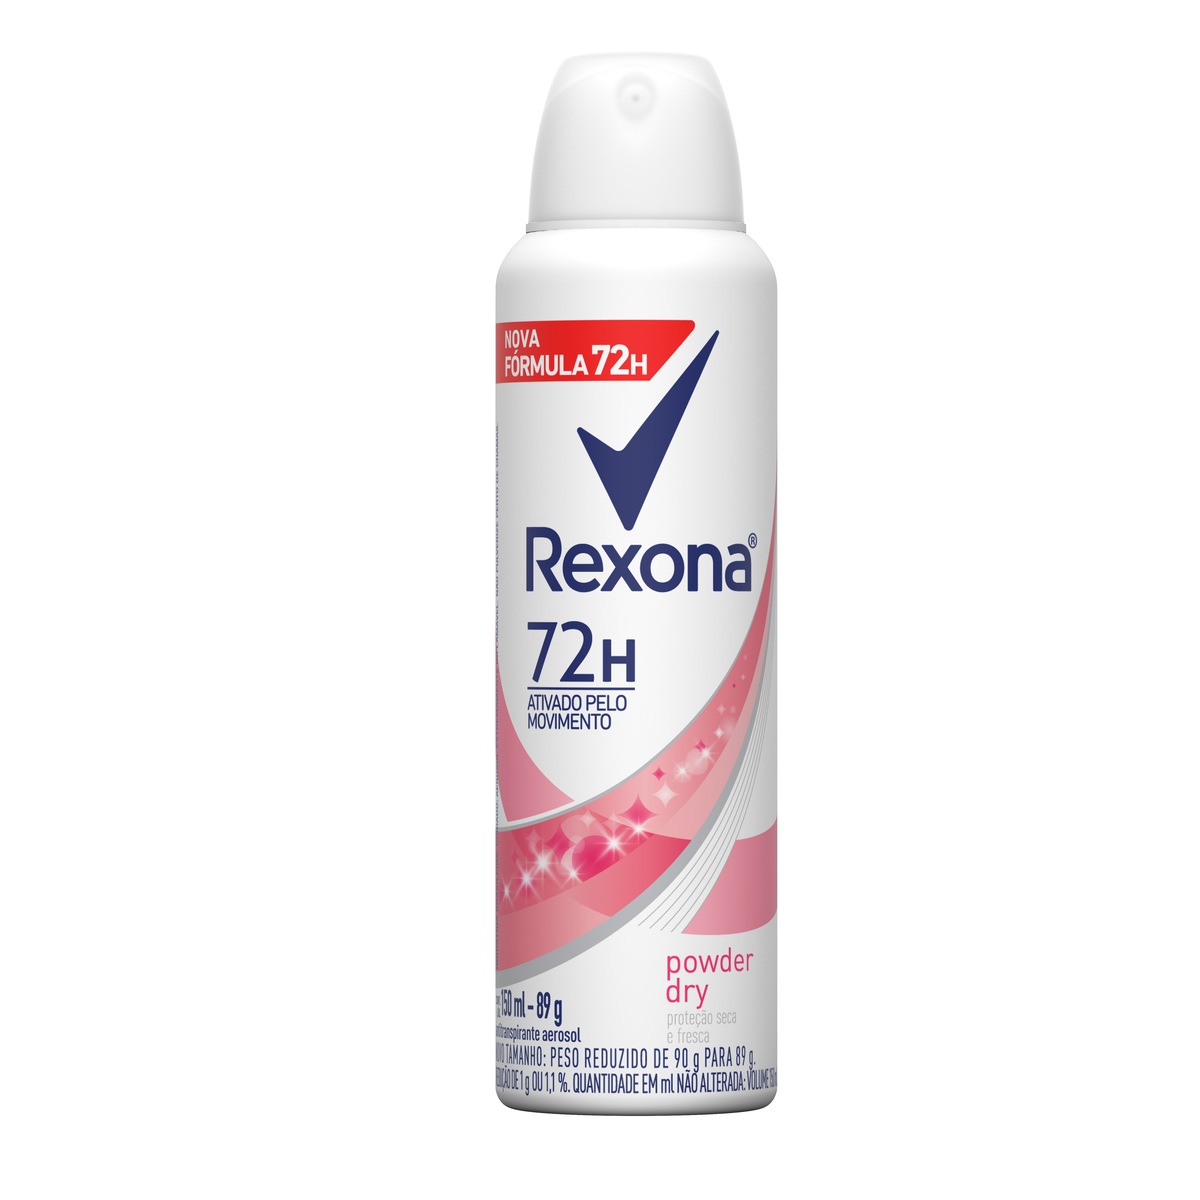 7791293032436 - ANTITRANSPIRANTE AEROSSOL POWDER DRY REXONA MOTIONSENSE 150ML